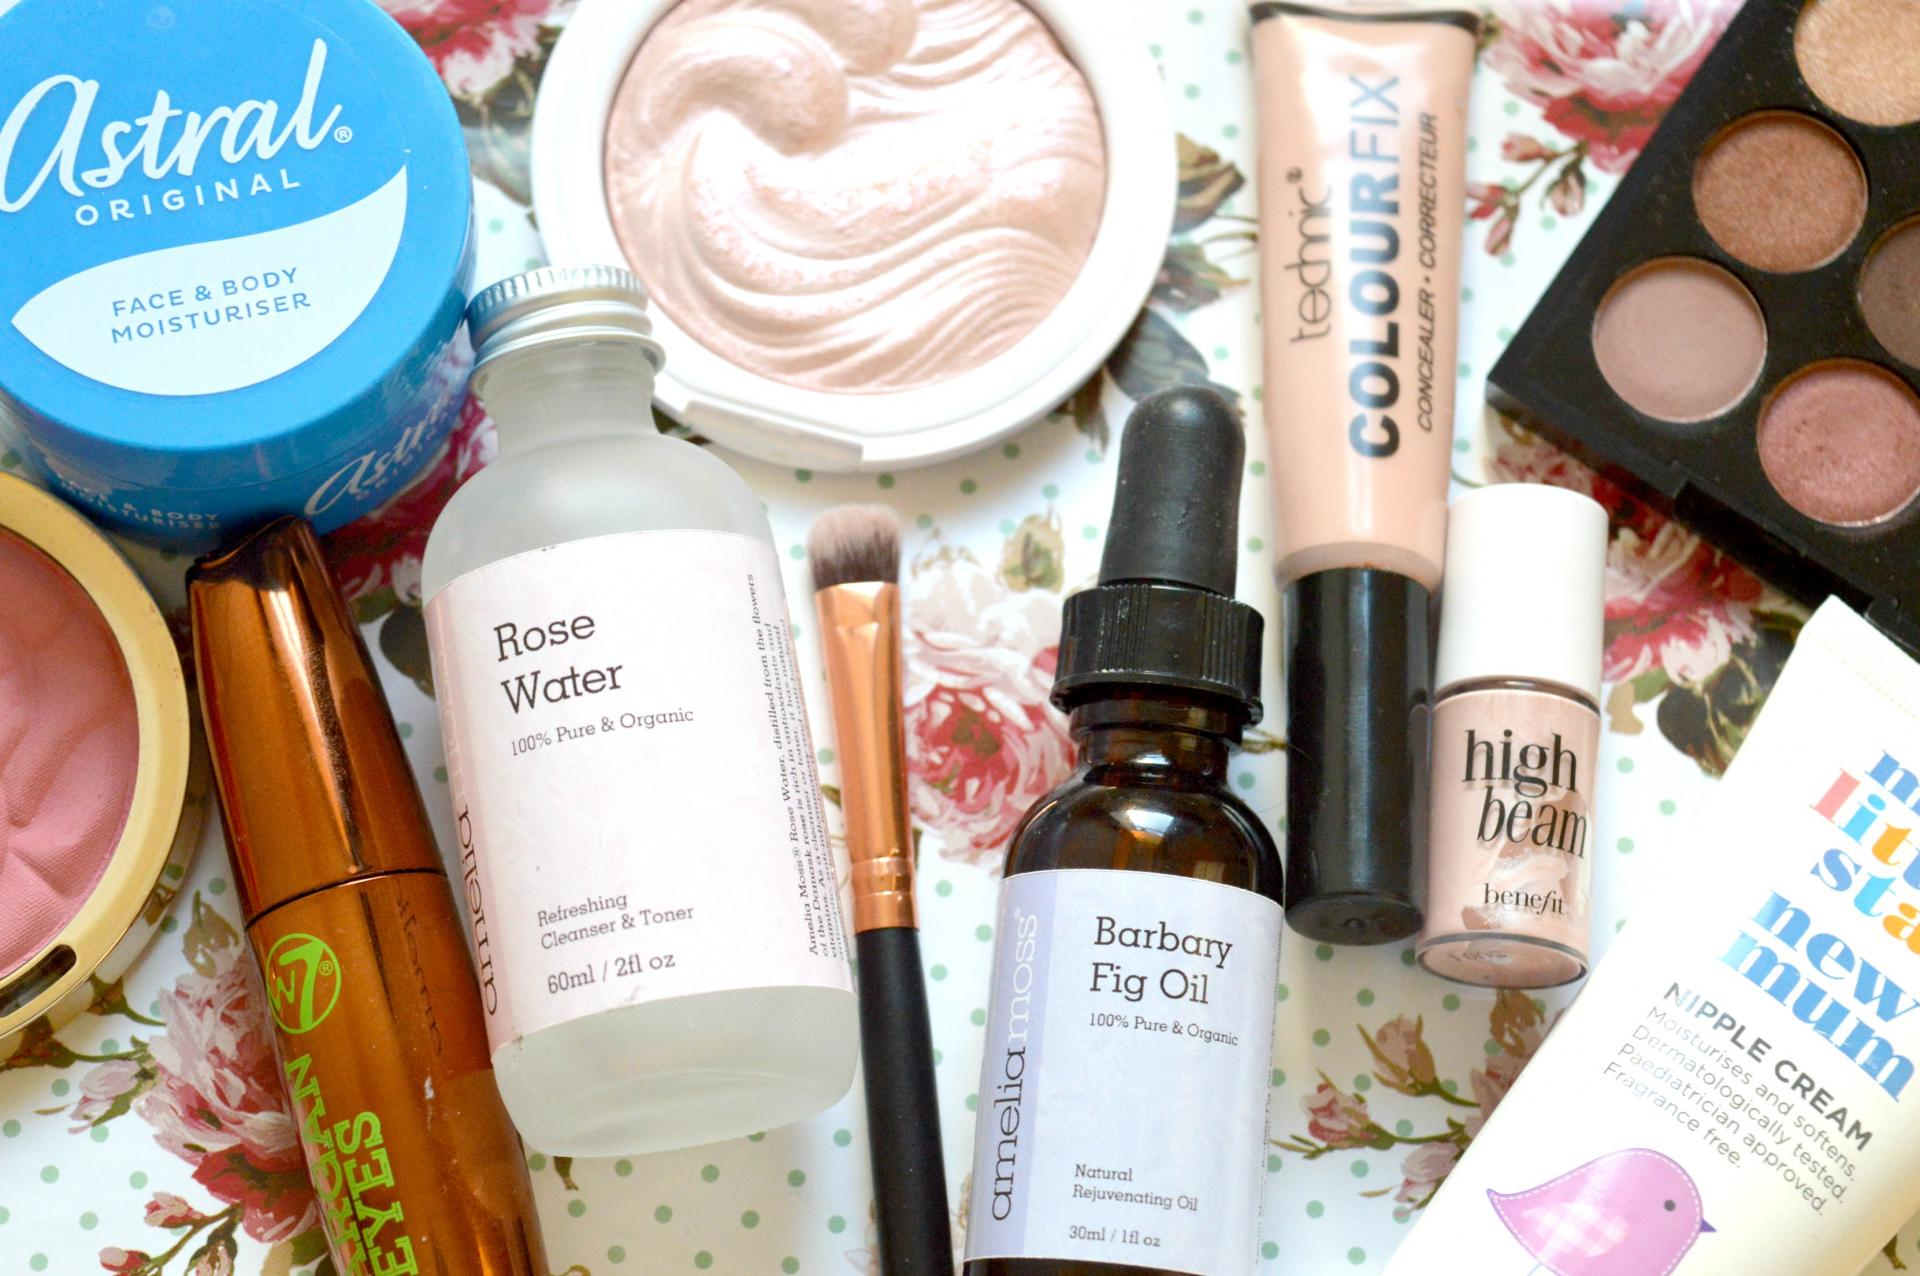 2016 Favourites | Astral Face and Body Moisturiser, Amelia Moss Rose Water, Amelia Moss Barbary Fig Oil, Superdrug My Little Star New Mum Nipple Cream, W7 Argan Eyes Mascara, Technic Colour Fix Concealer, Benefit High Beam, Milani Rose Blush in Tea Rose, MUA Undress Your Skin Highlighting Powder in Pink Shimmer, W7 The Naughty Nine Mid Summer Nights palette and Large Affordable AliExpress Eyeshadow Brush